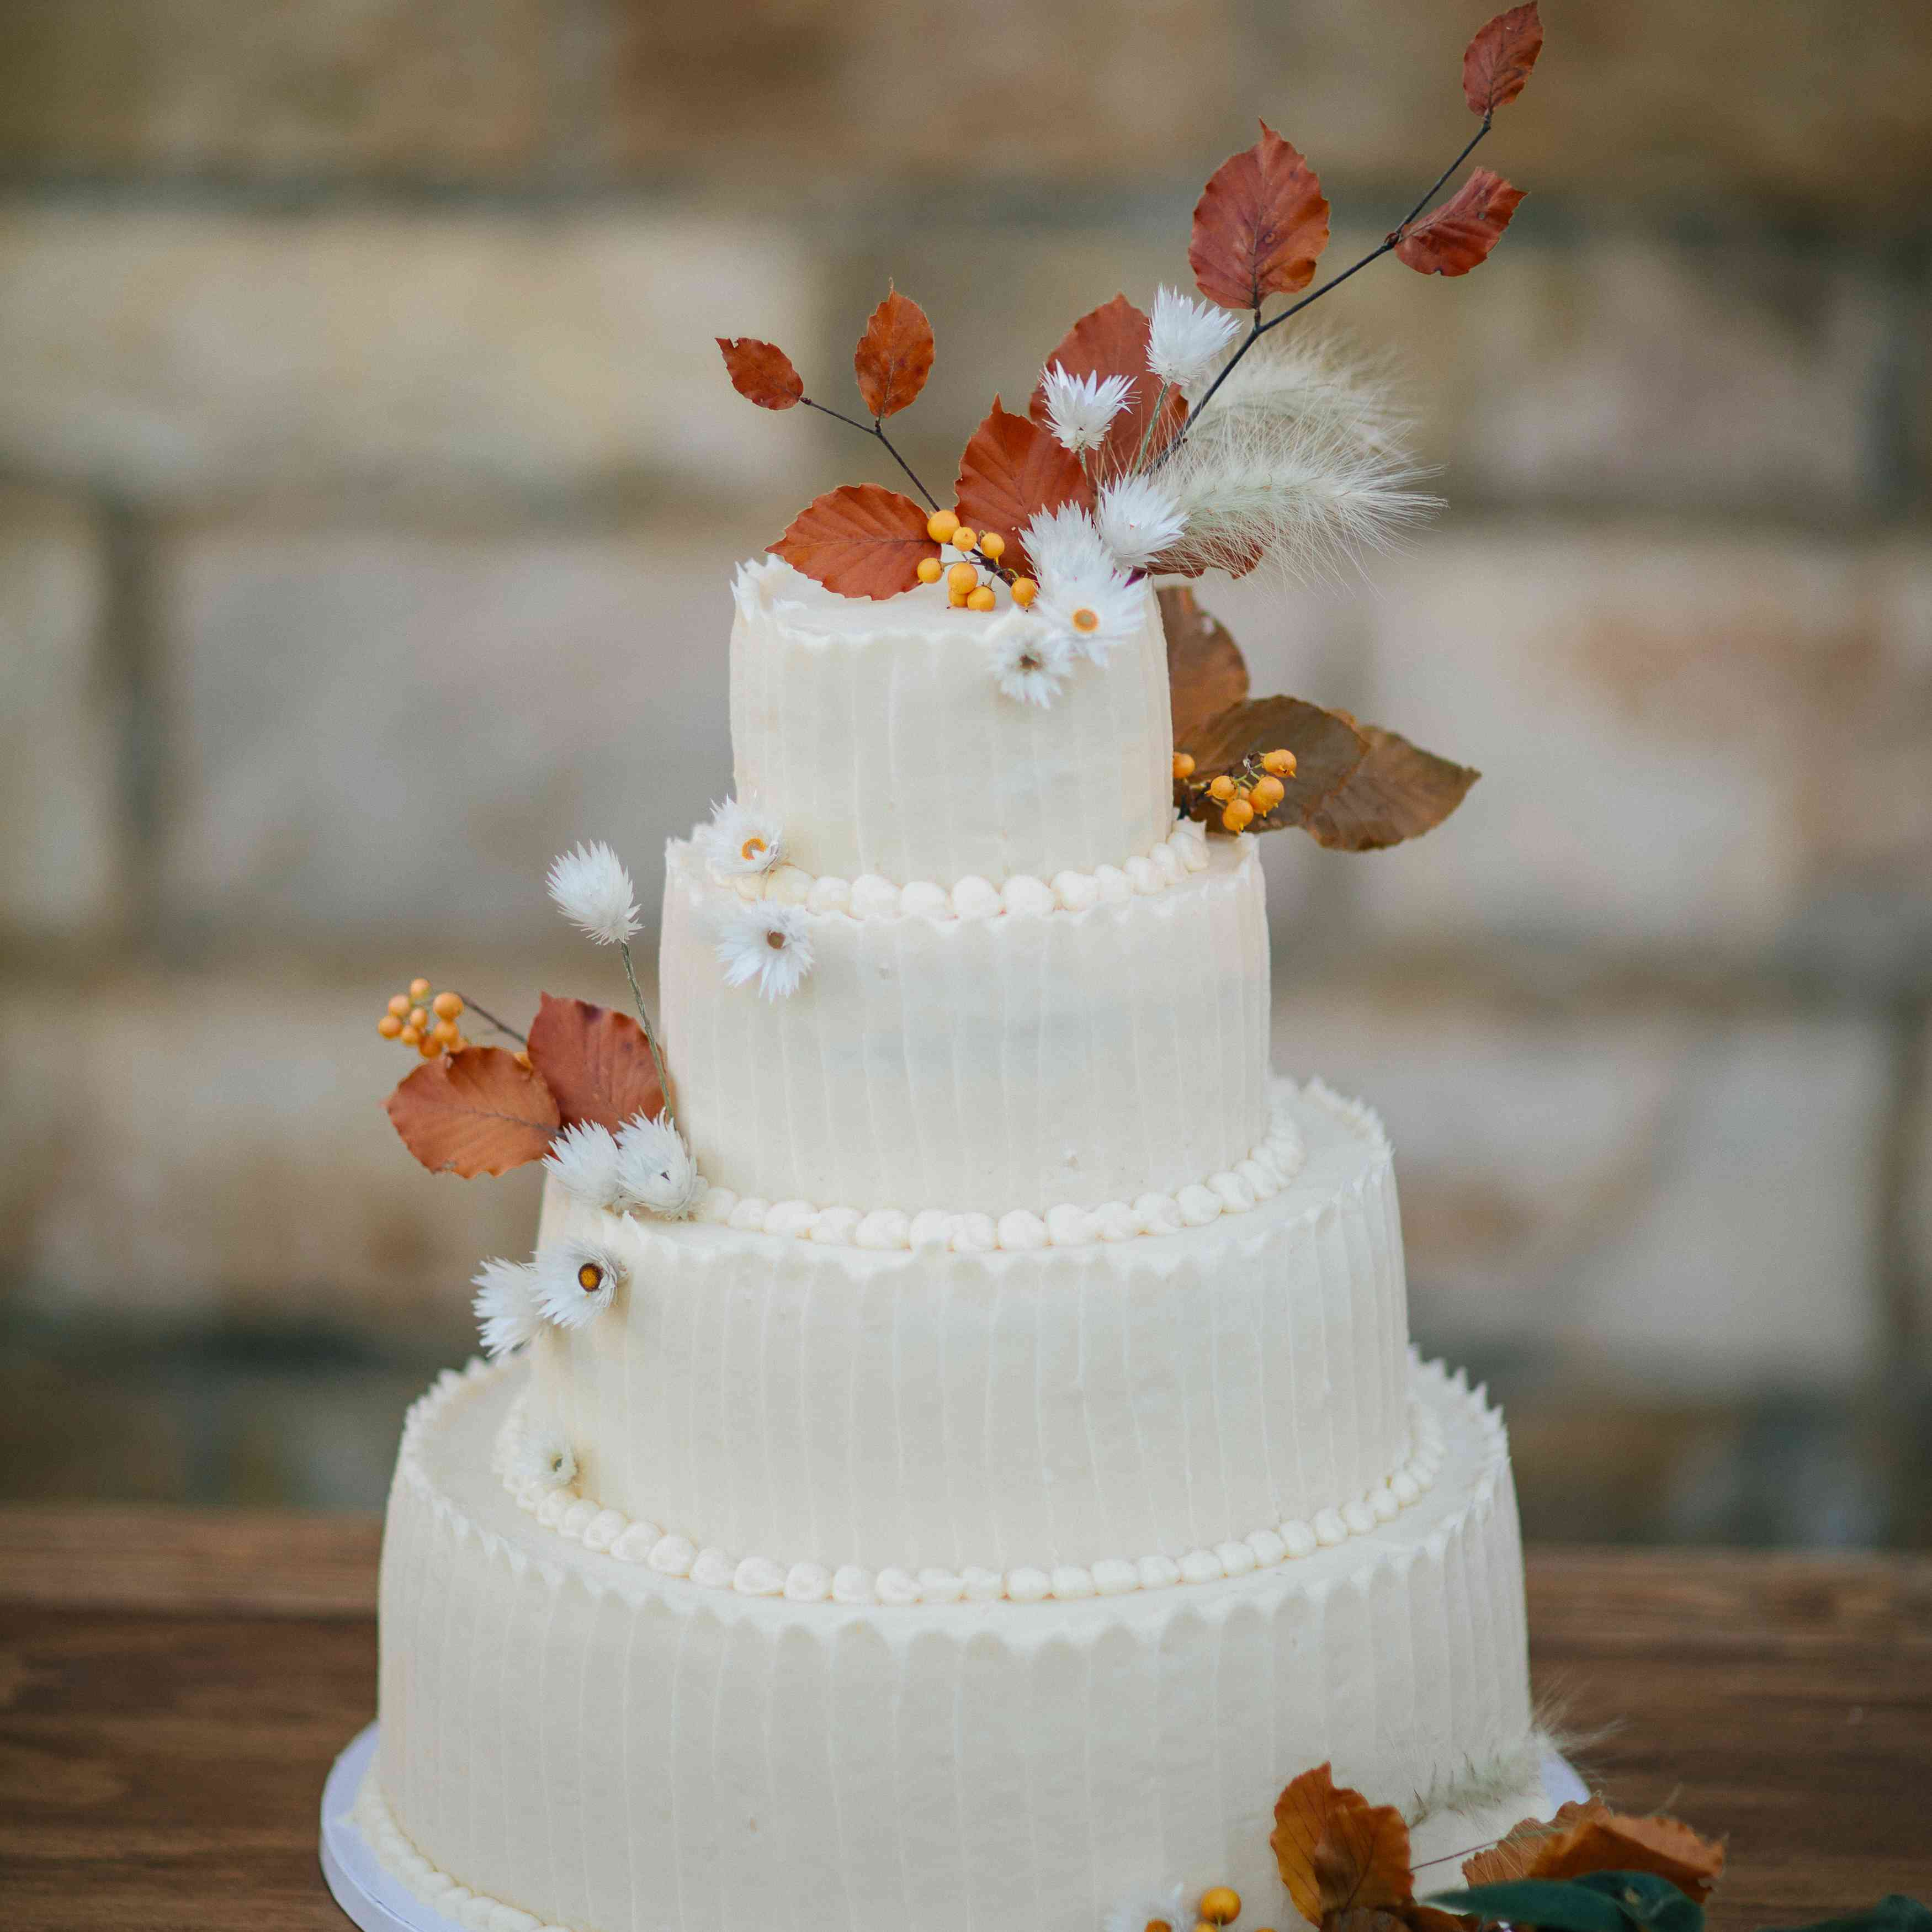 Tiered fall-themed wedding cake with leaves and dried grass accents